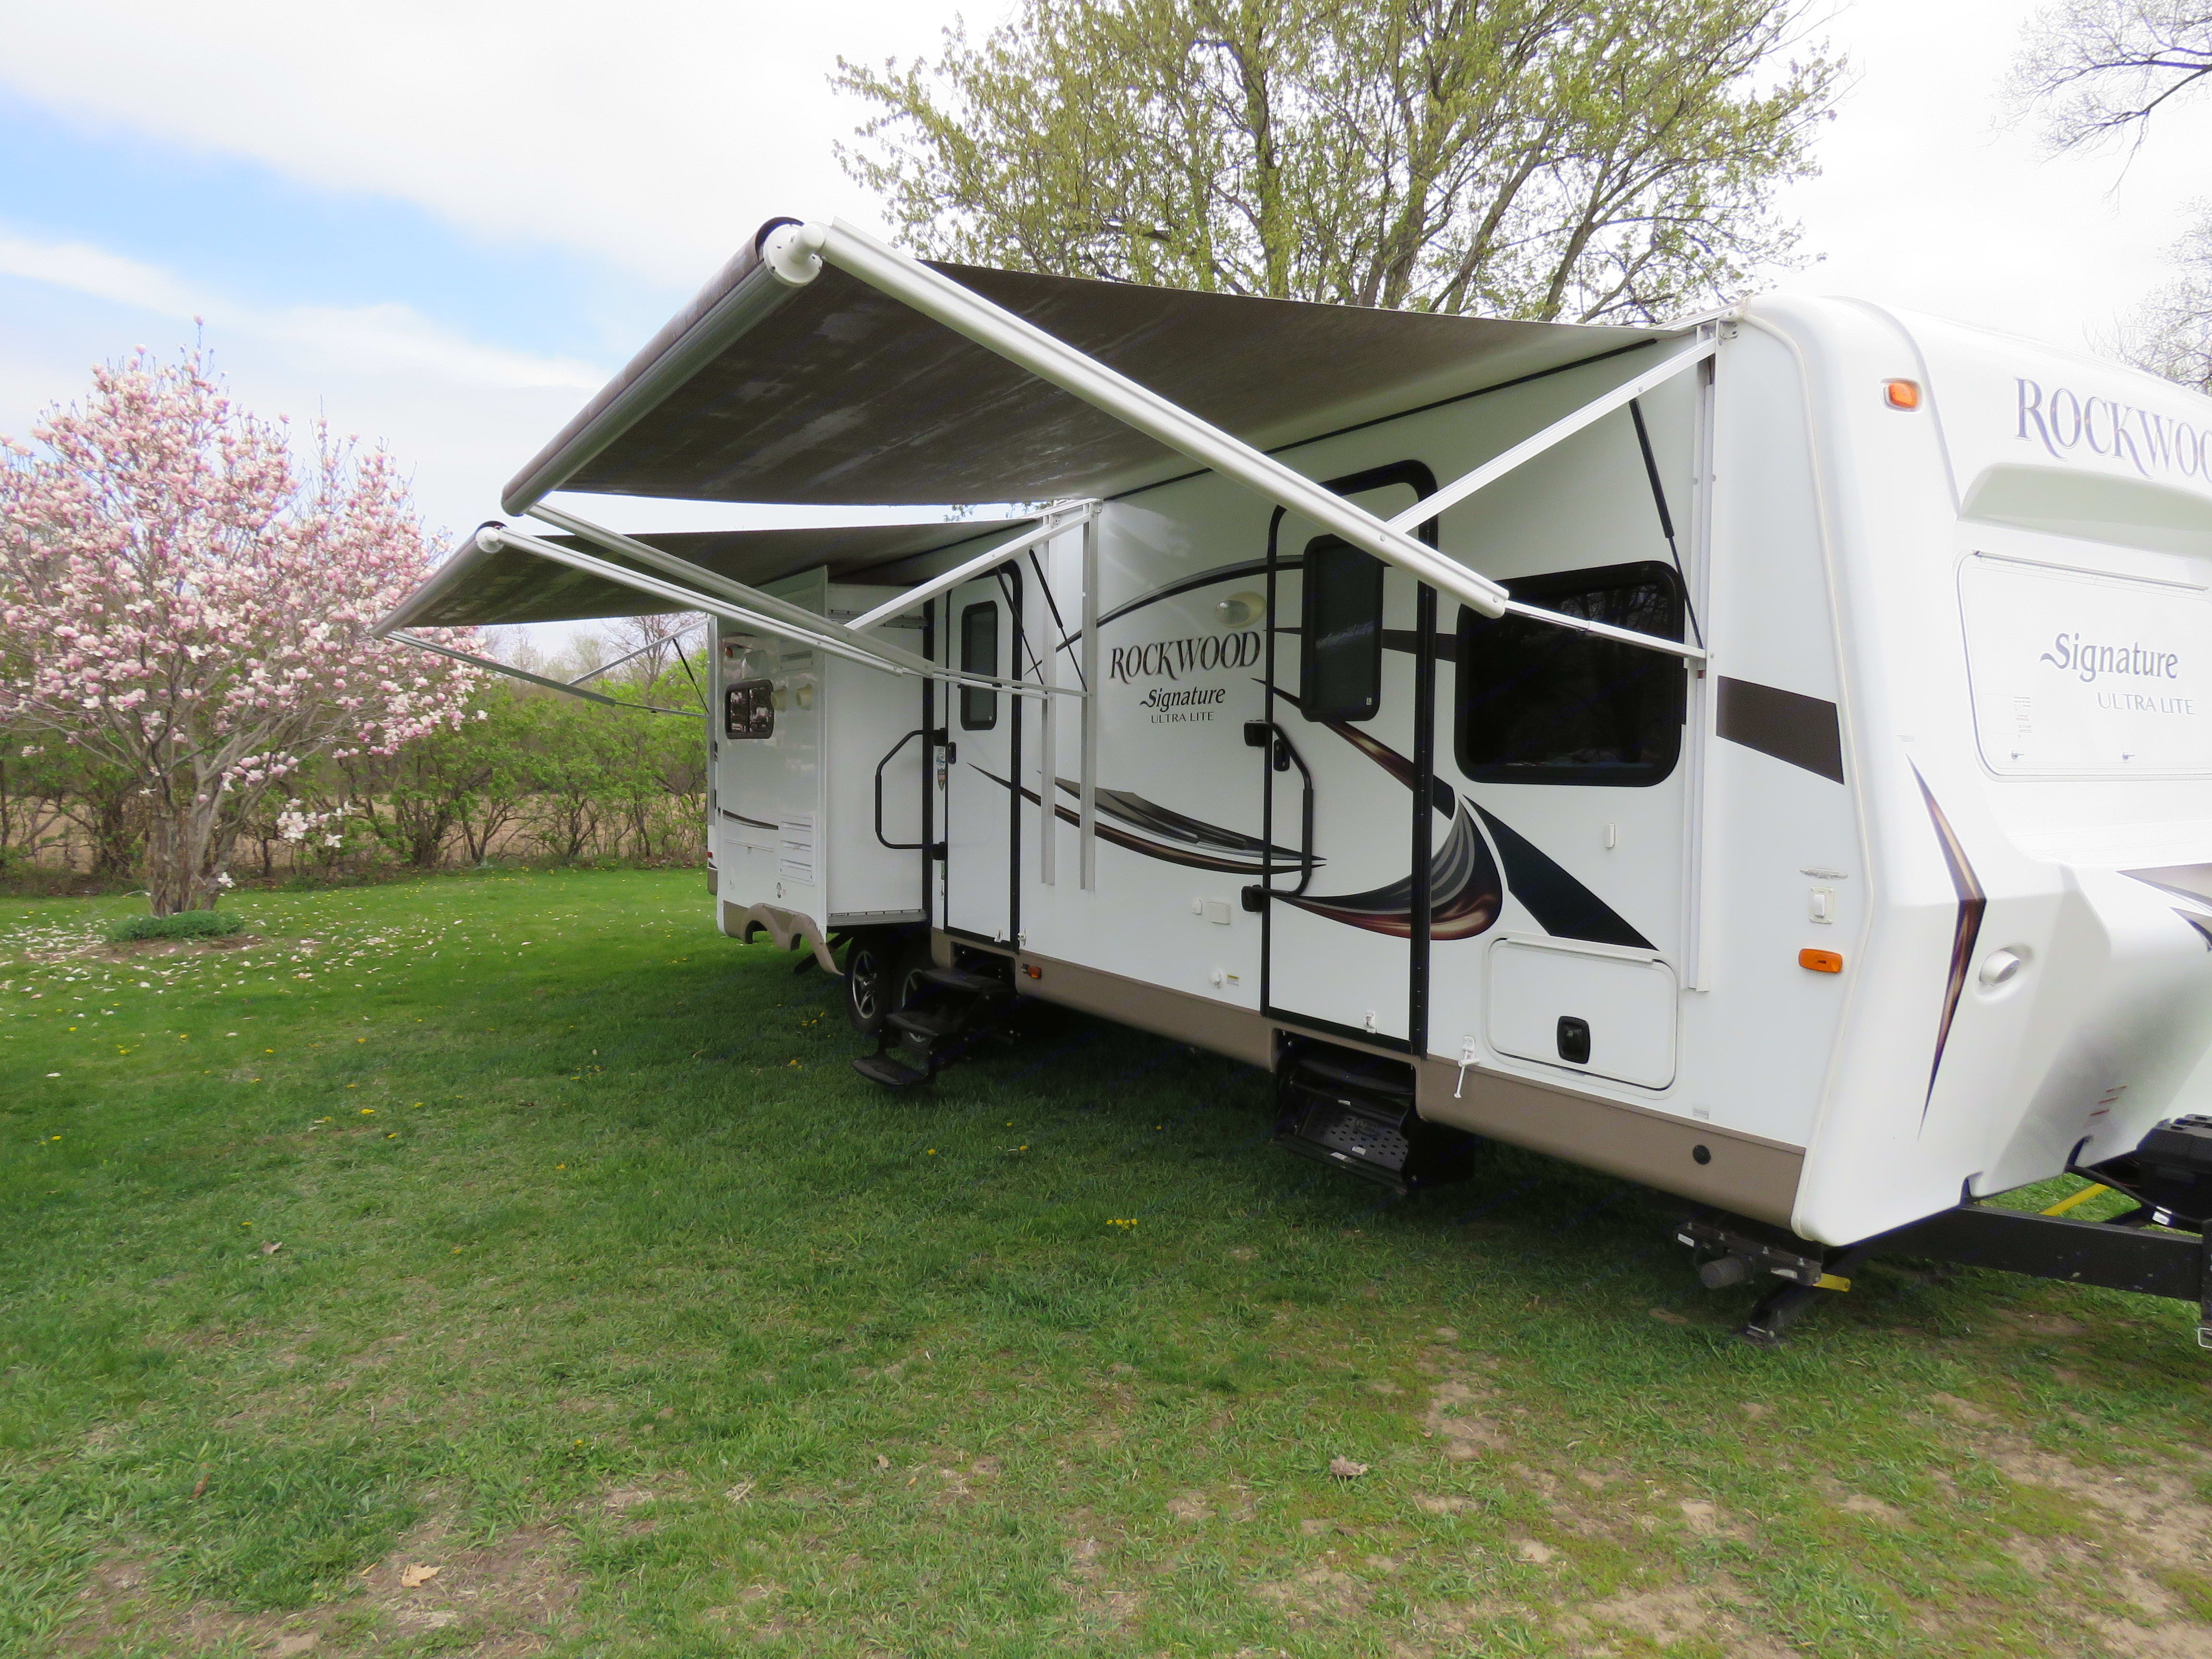 Automatic awnings can be easily adjusted to create shade. . Forest River Rockwood Signature Ultra 2016